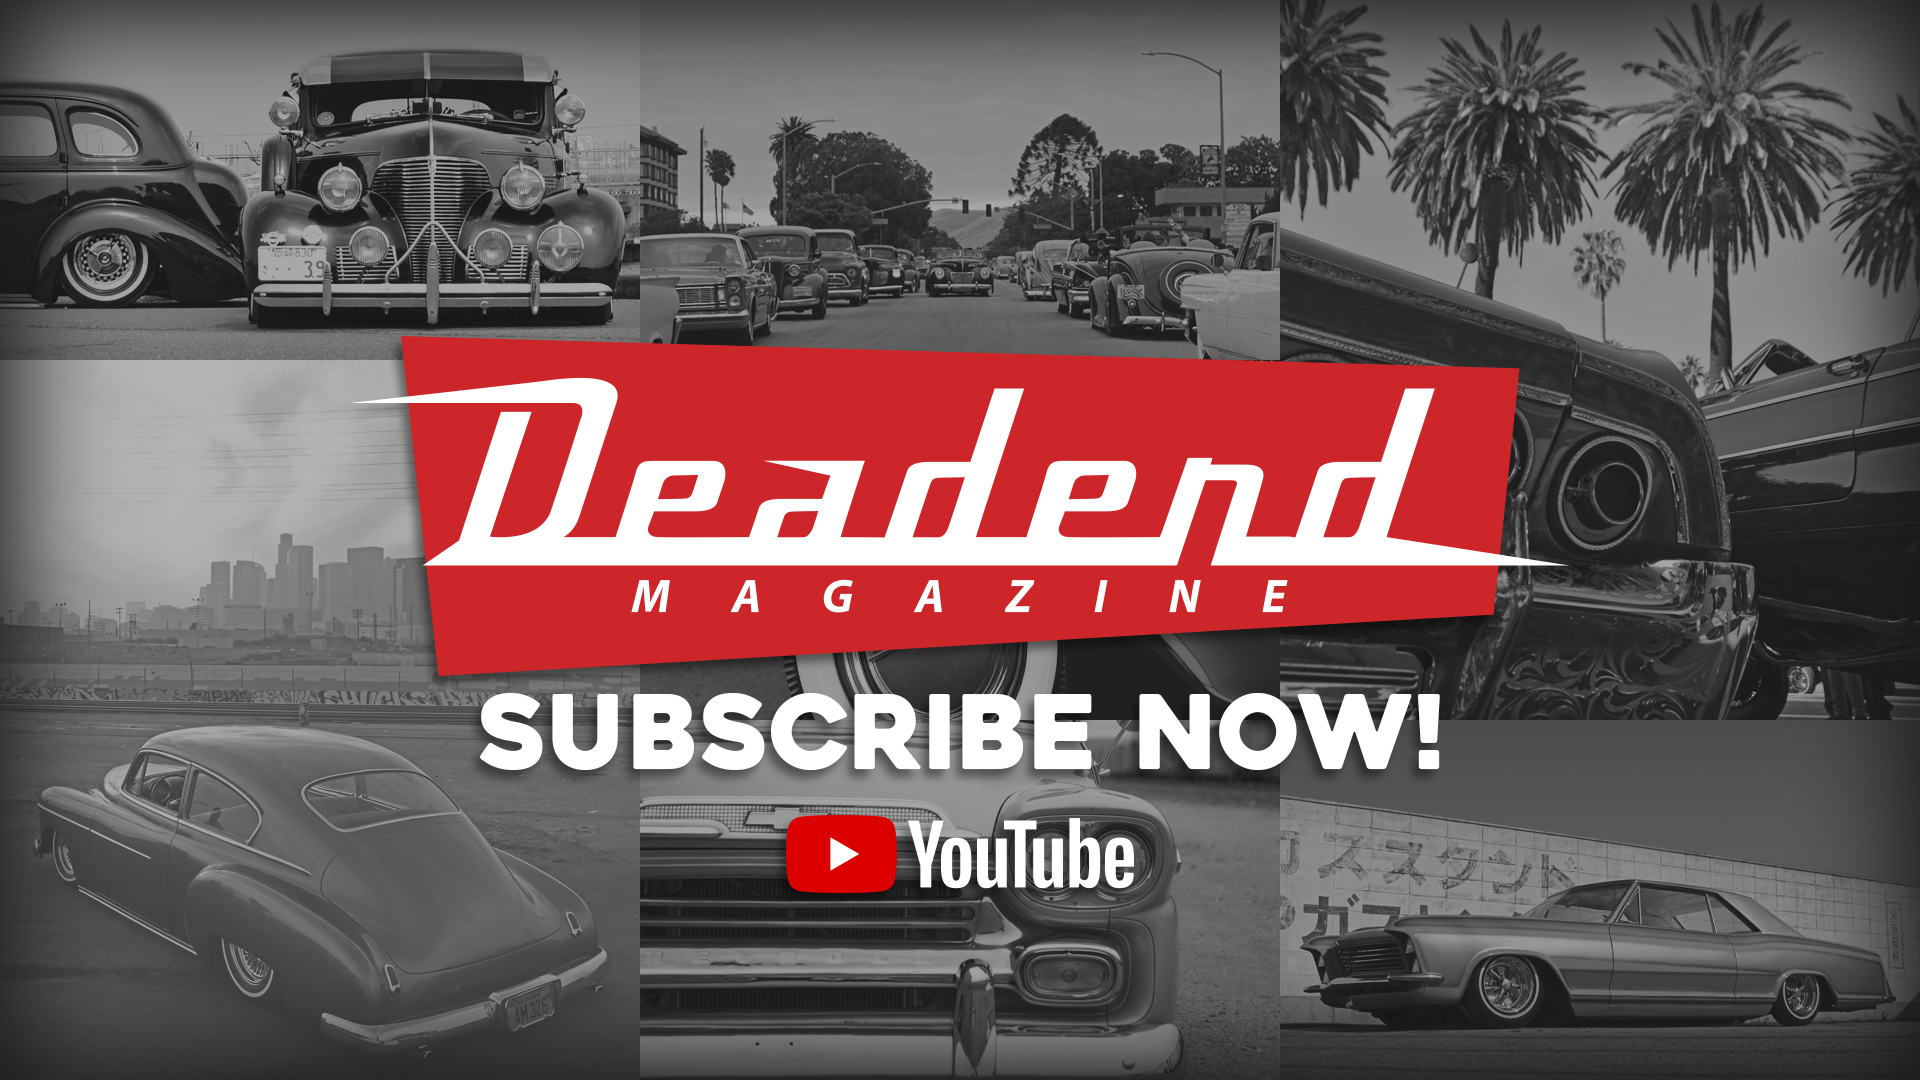 Click to Subscribe to the Deadend Magazine YouTube channel.